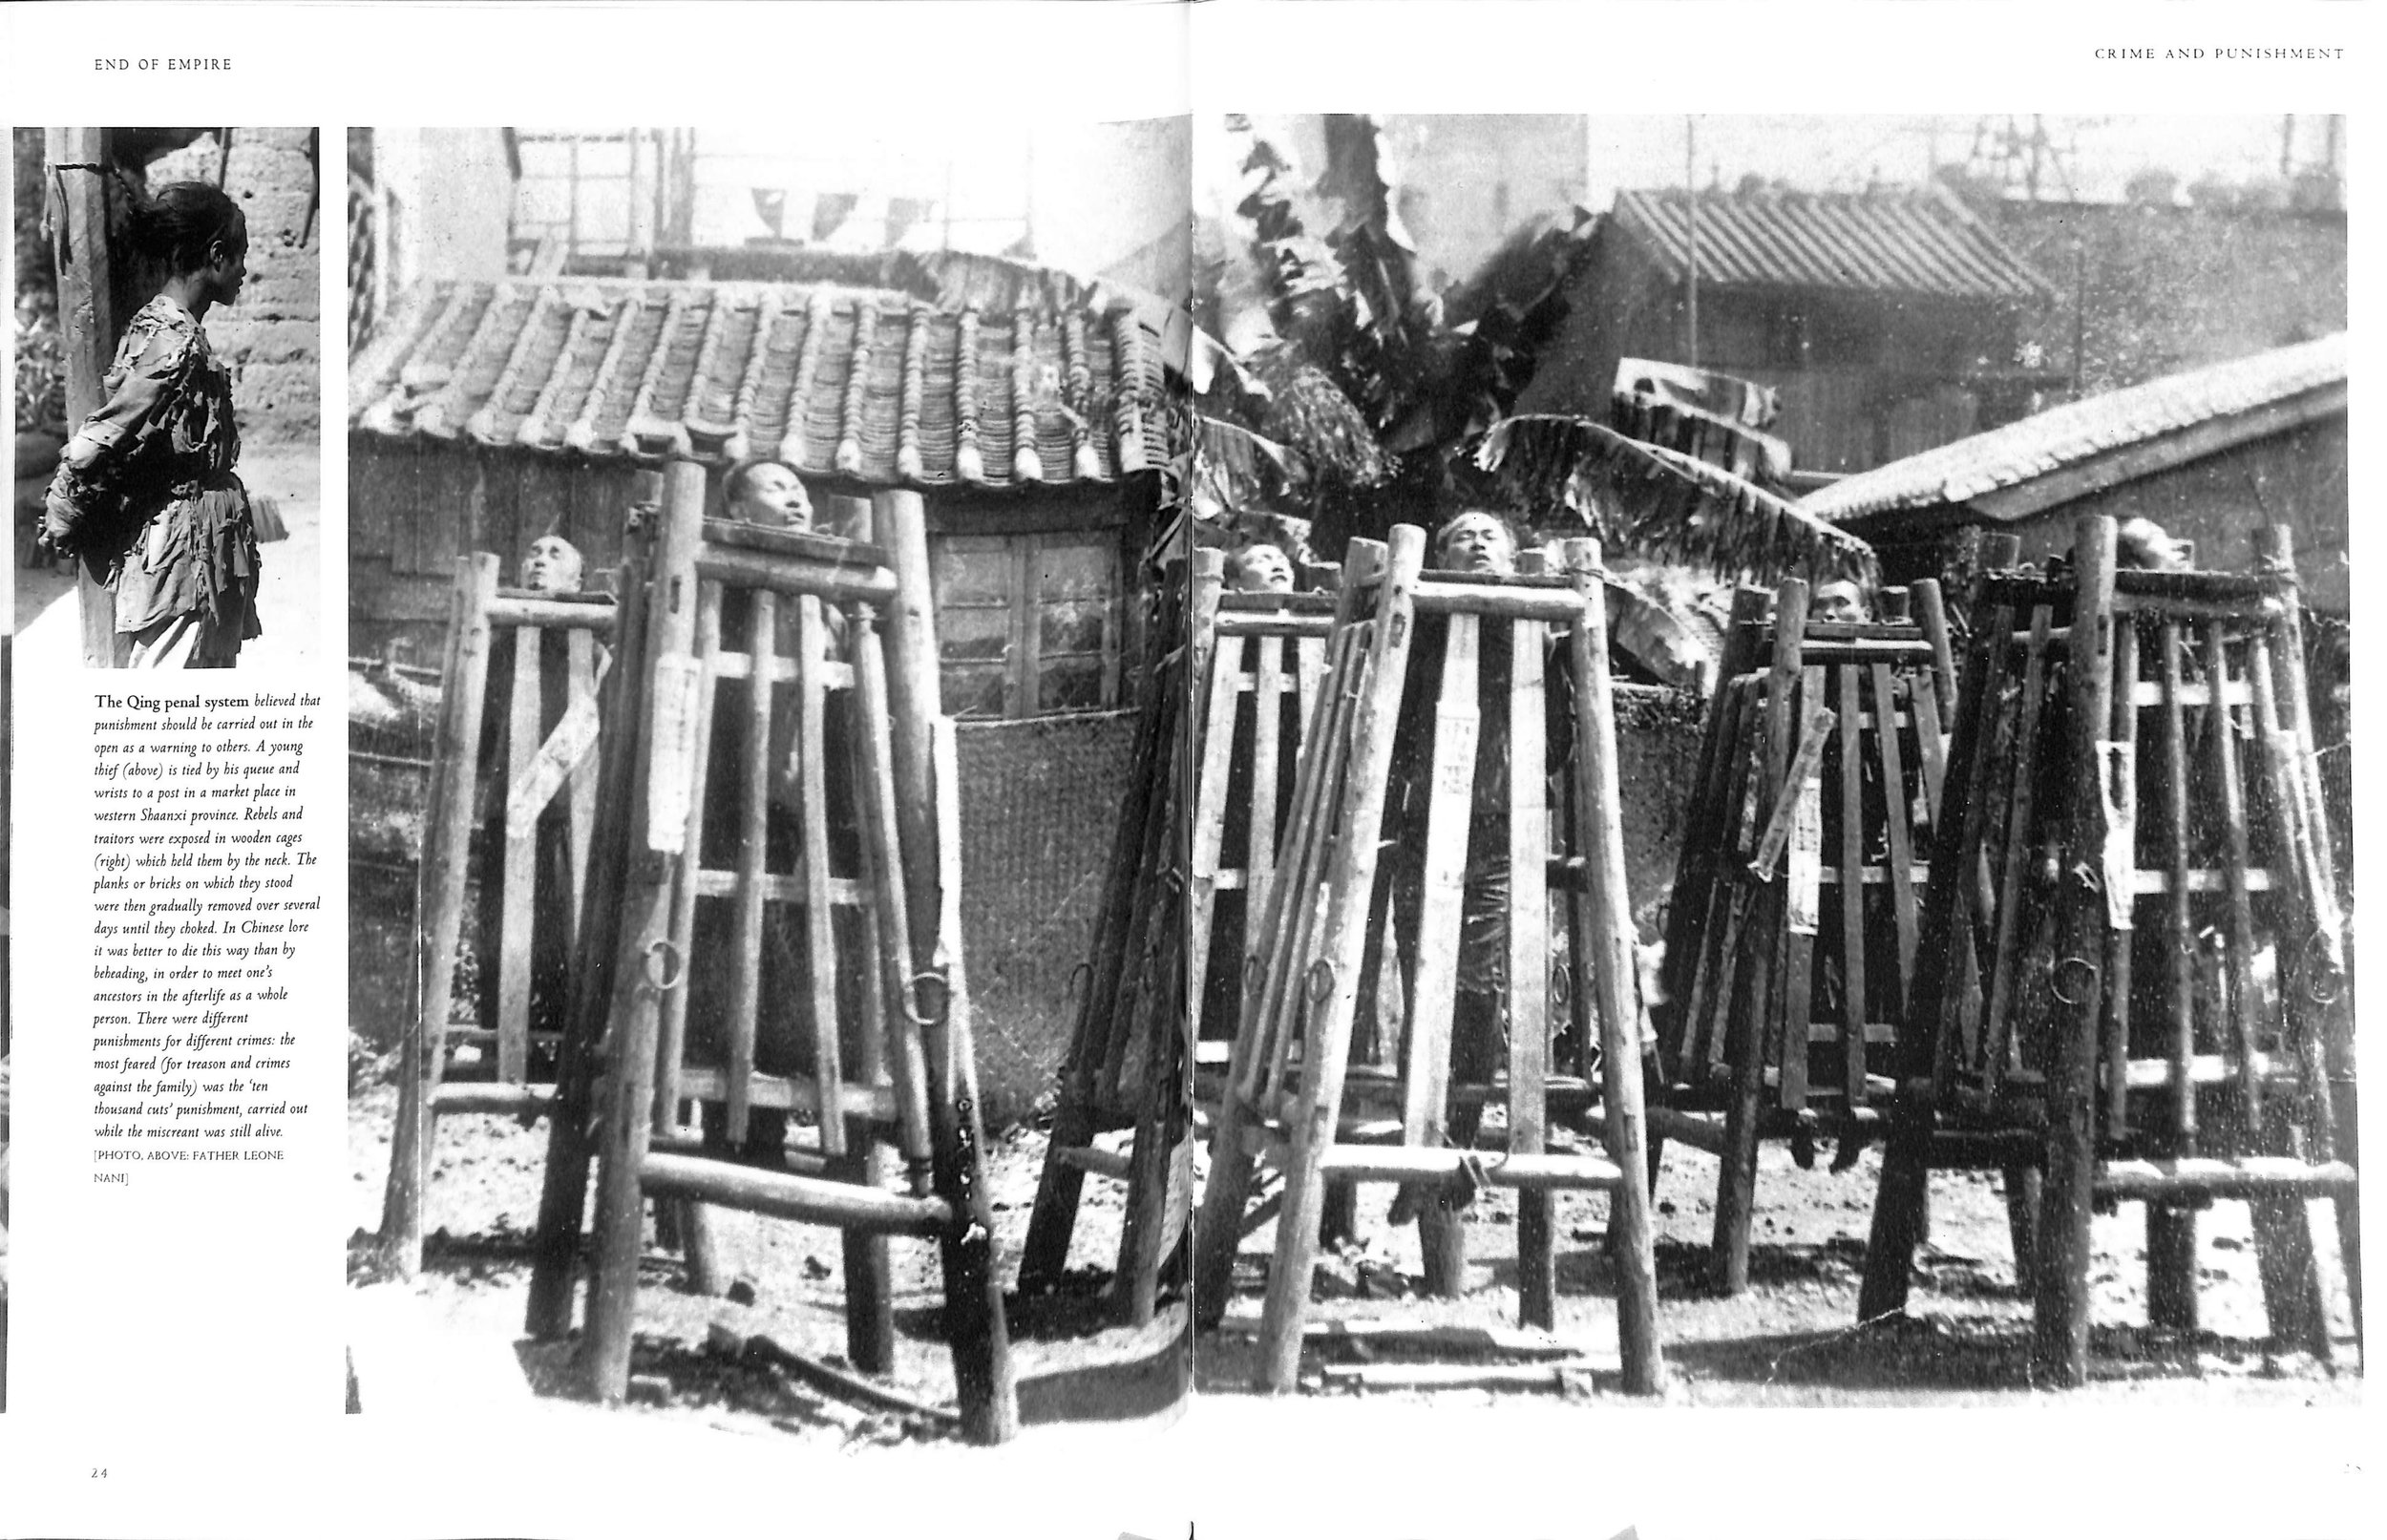 - These Chinese prisoners are experiencing first hand the 'culture and kindness' of the government of the Chinese Emperor. They are held in cages by the neck and the bricks on which they stand are gradually removed over several days until they choke - Torture and execution.In Australia since 1820, 1648 executions by hanging occurred, of which 4 are recorded as Aborigines (wikipedia & click here). Capital punishment is now banned in Australia.Whereas in Mr Pascoe's 'cultured and kind' China, capital punishment is still legal and more than 50% of the world's executions take place in China, although they are becoming 'kinder' - in 2014 'only' 2400 executions occurred, down from 12,000 in 2002 (wikipedia).